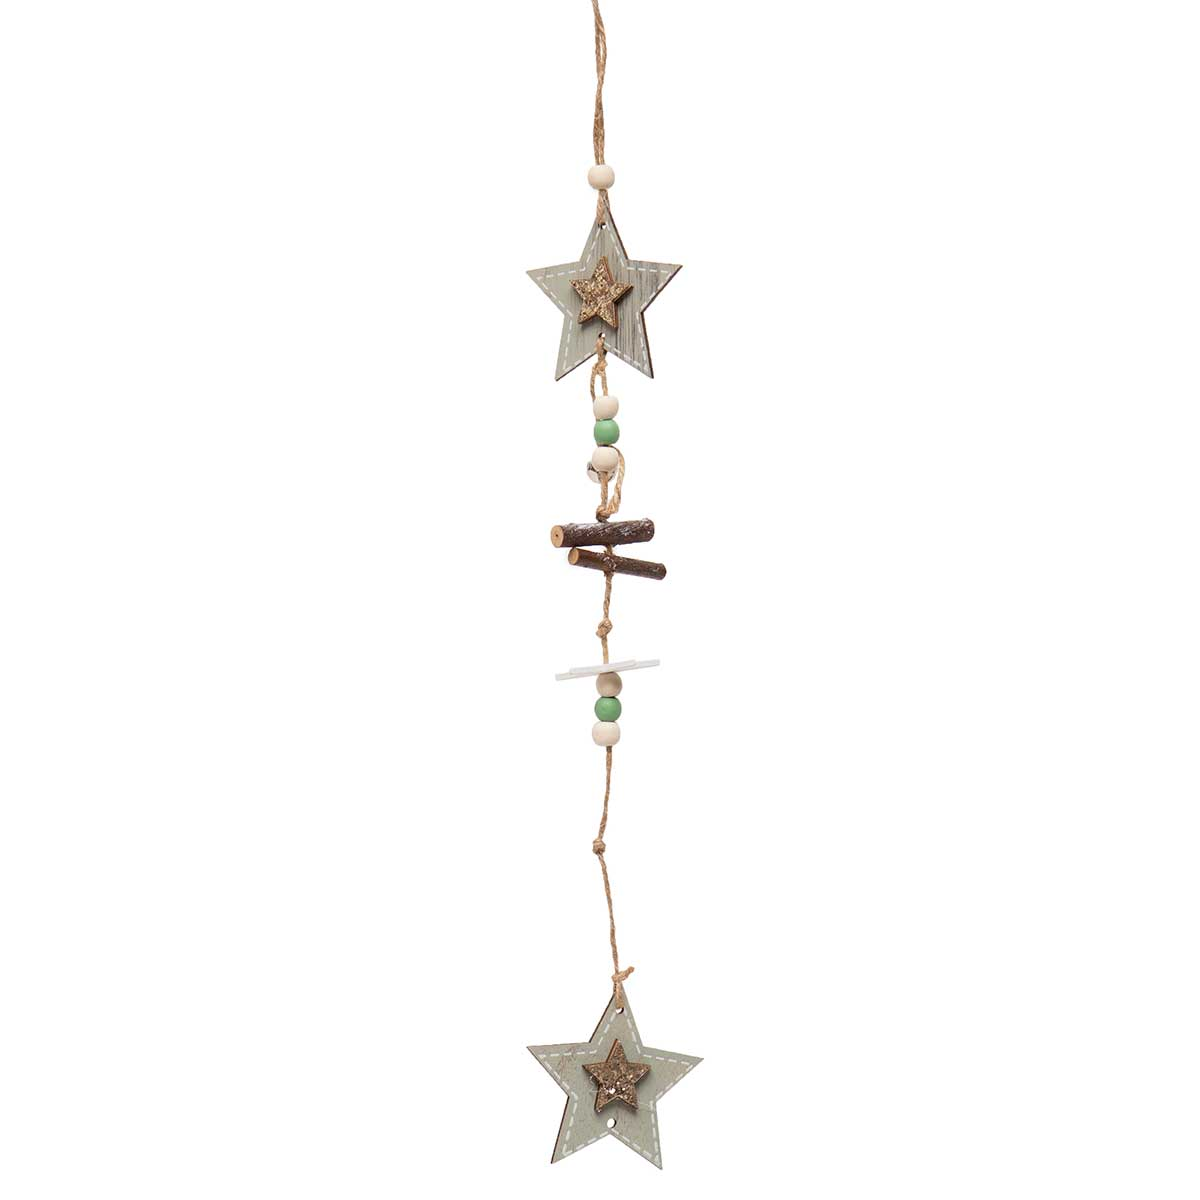 LIGHT GREEN WOOD STAR WITH BEADS, JINGLE